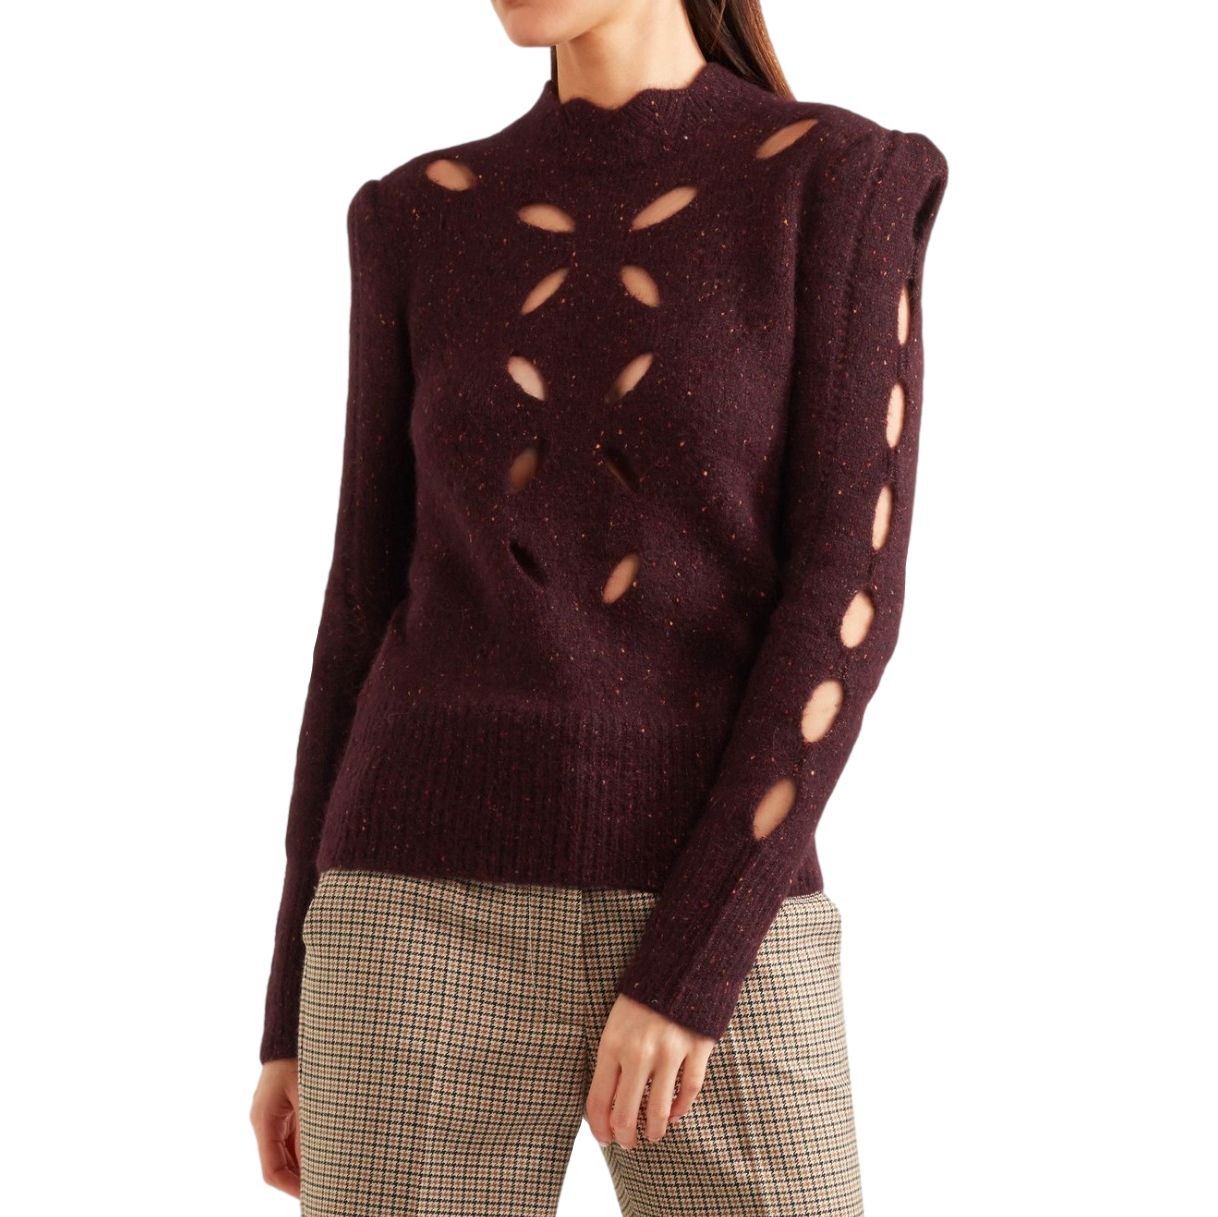 Isabel Marant's 'Elea' Cut Out Knitted Sweater